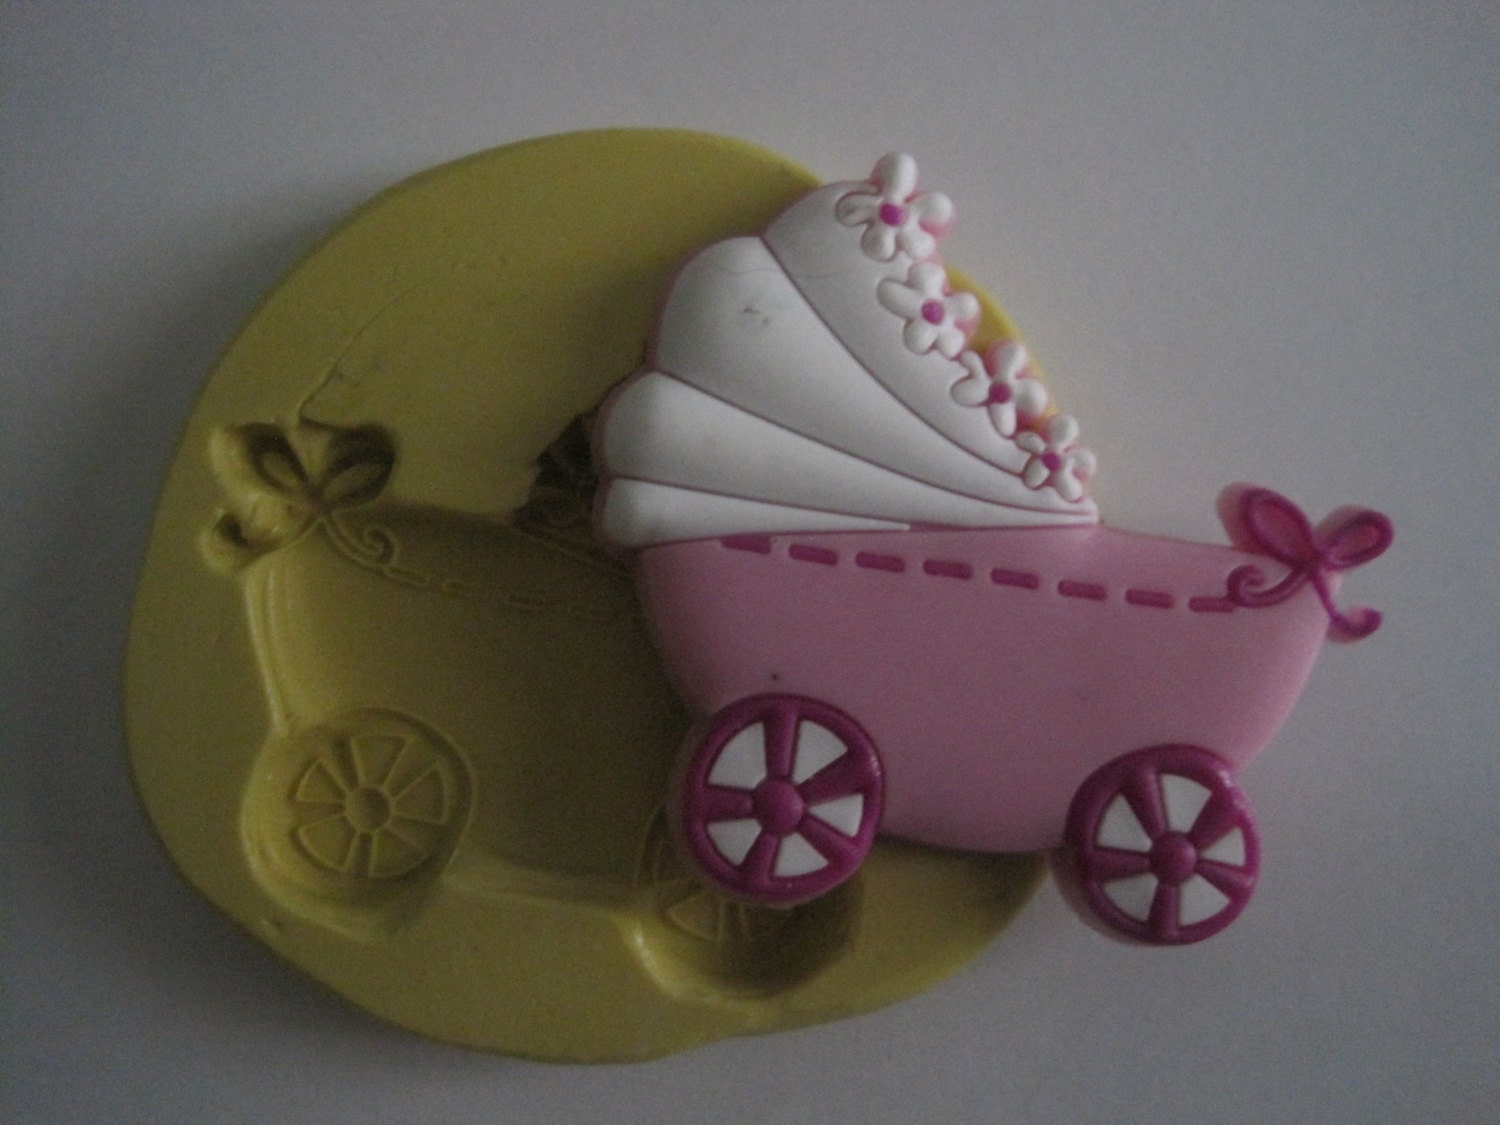 Baby Carriage Silicone Mold Baby Buggy Mold Silicone Molds